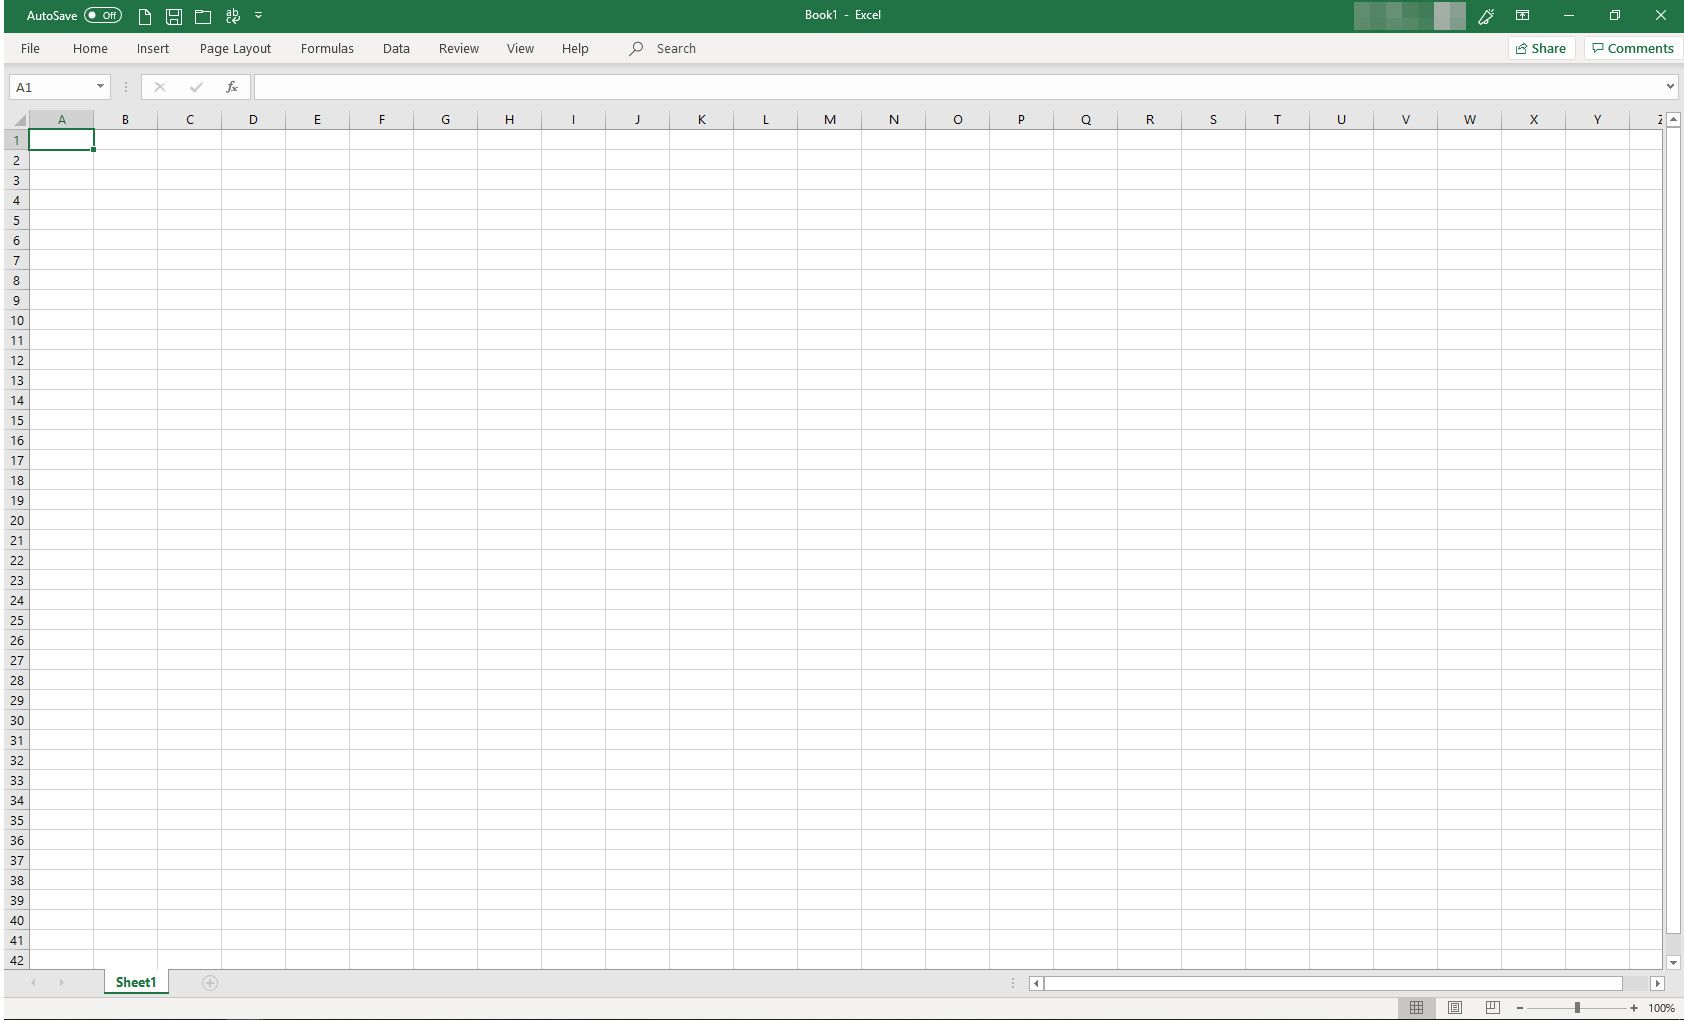 Microsoft Excel with ribbon collapsed